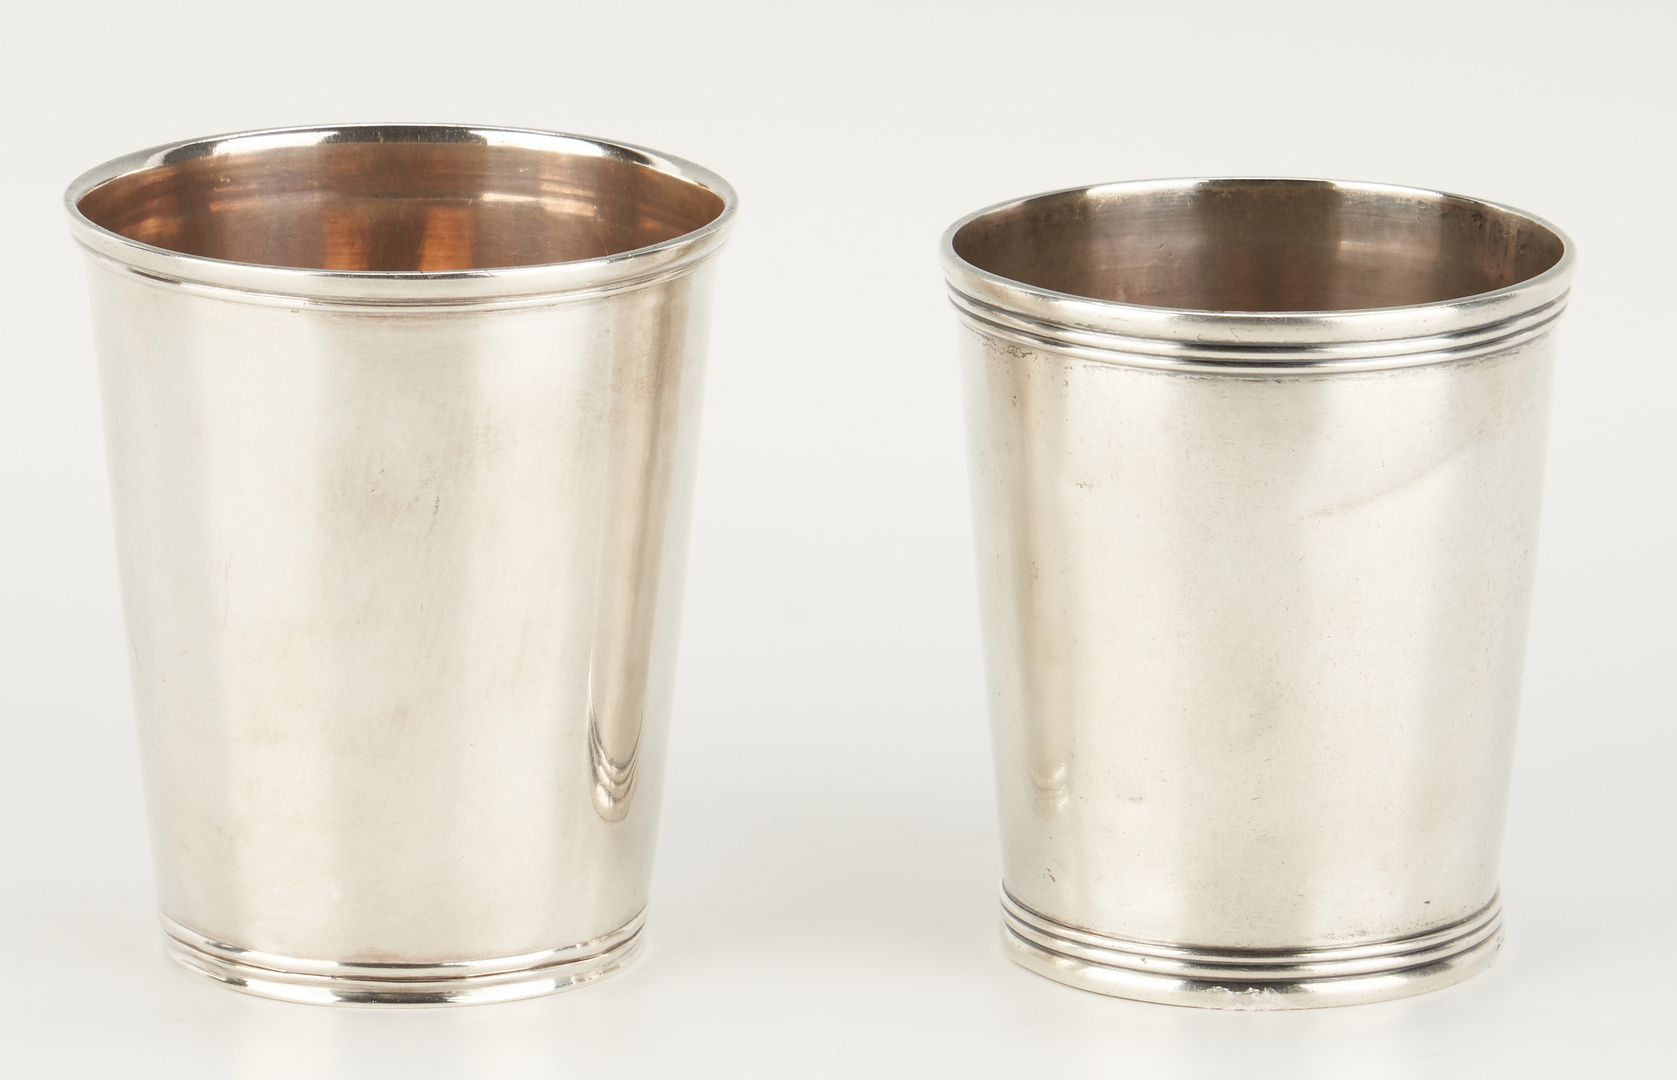 Lot 87: 2 Julep Cups incl. Akin, Werne, KY